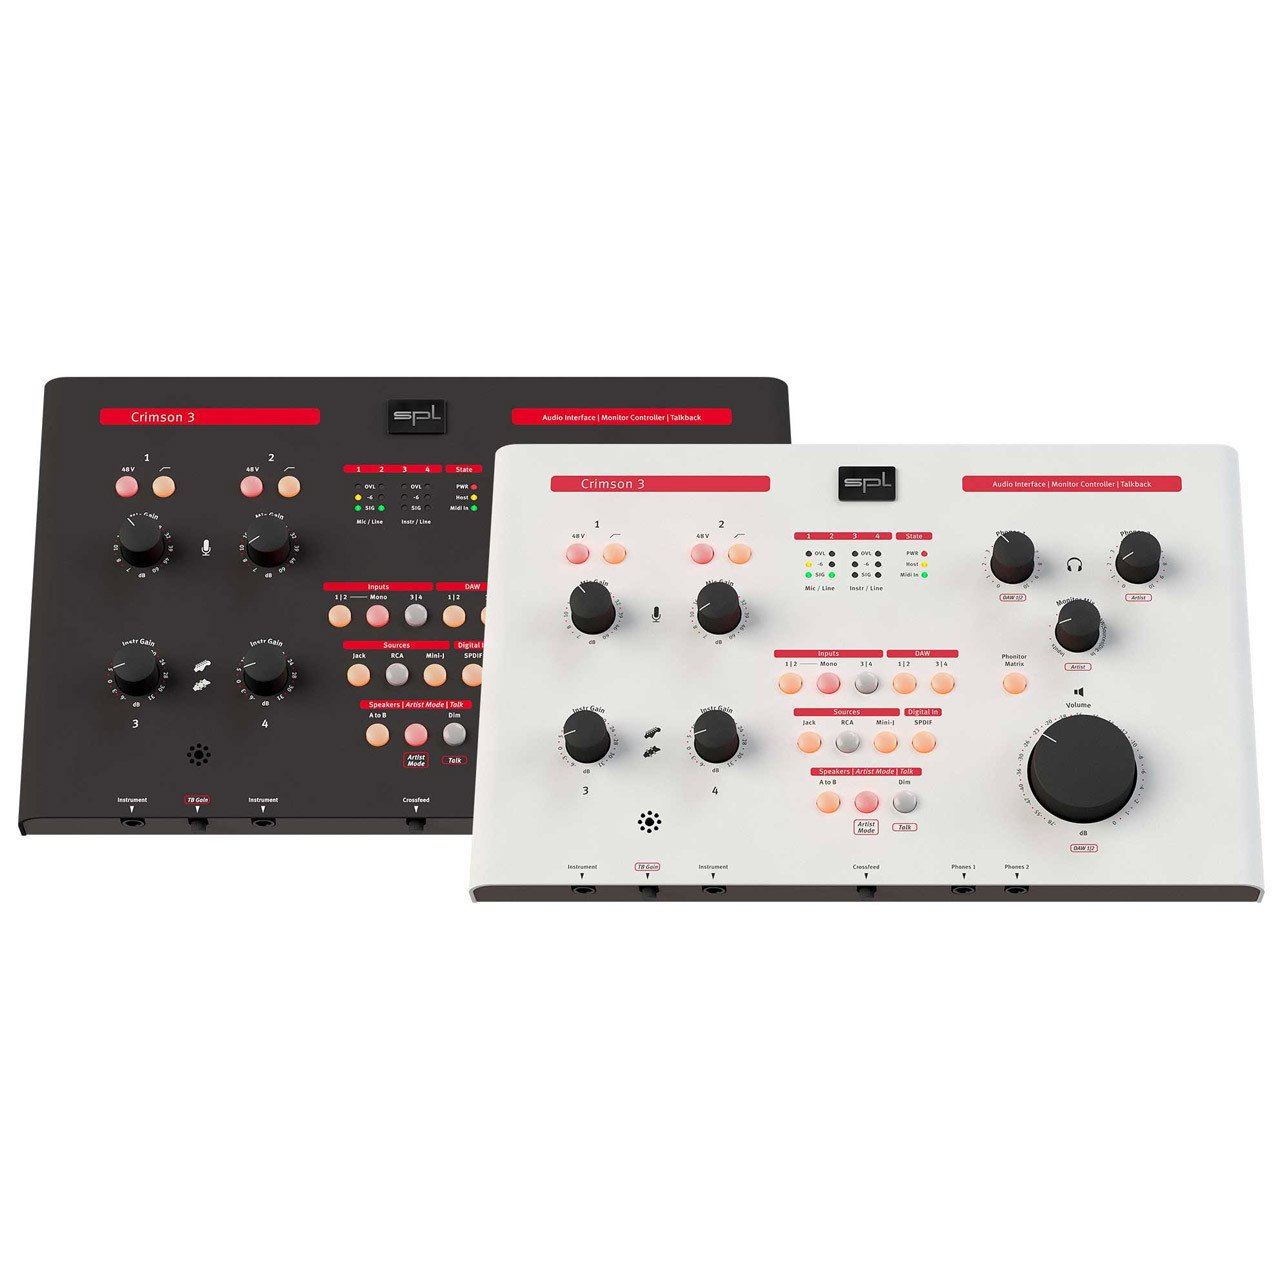 SPL Crimson 3.0 Audio Interface with Analog Monitoring